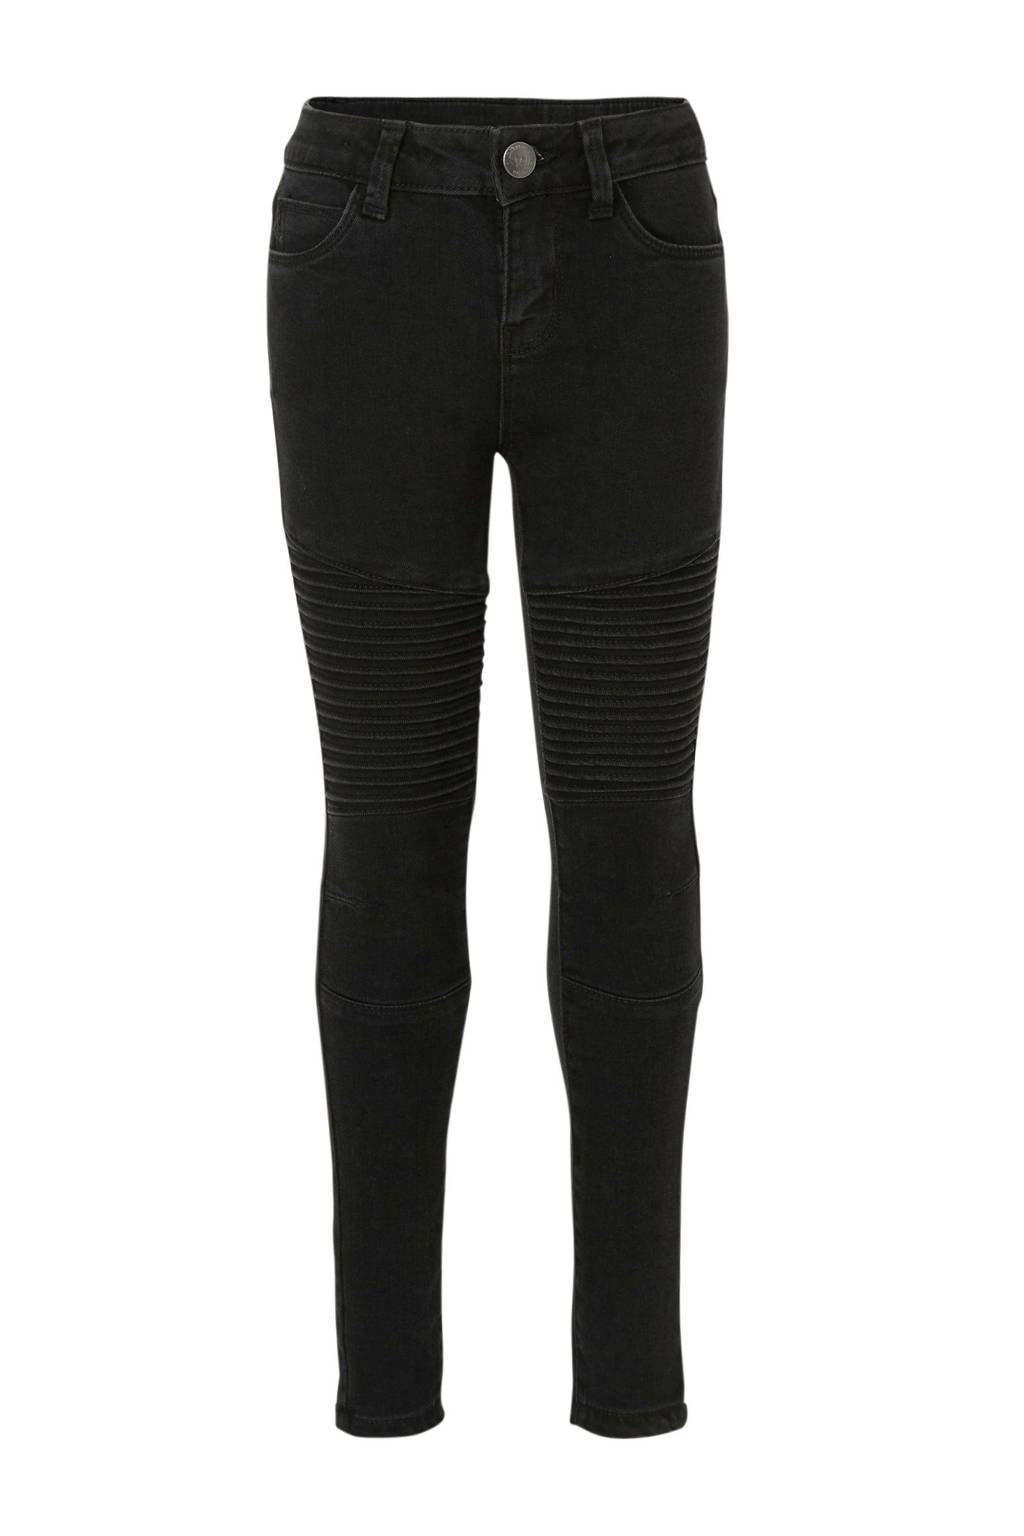 C&A Here & There skinny jeans zwart, Zwart